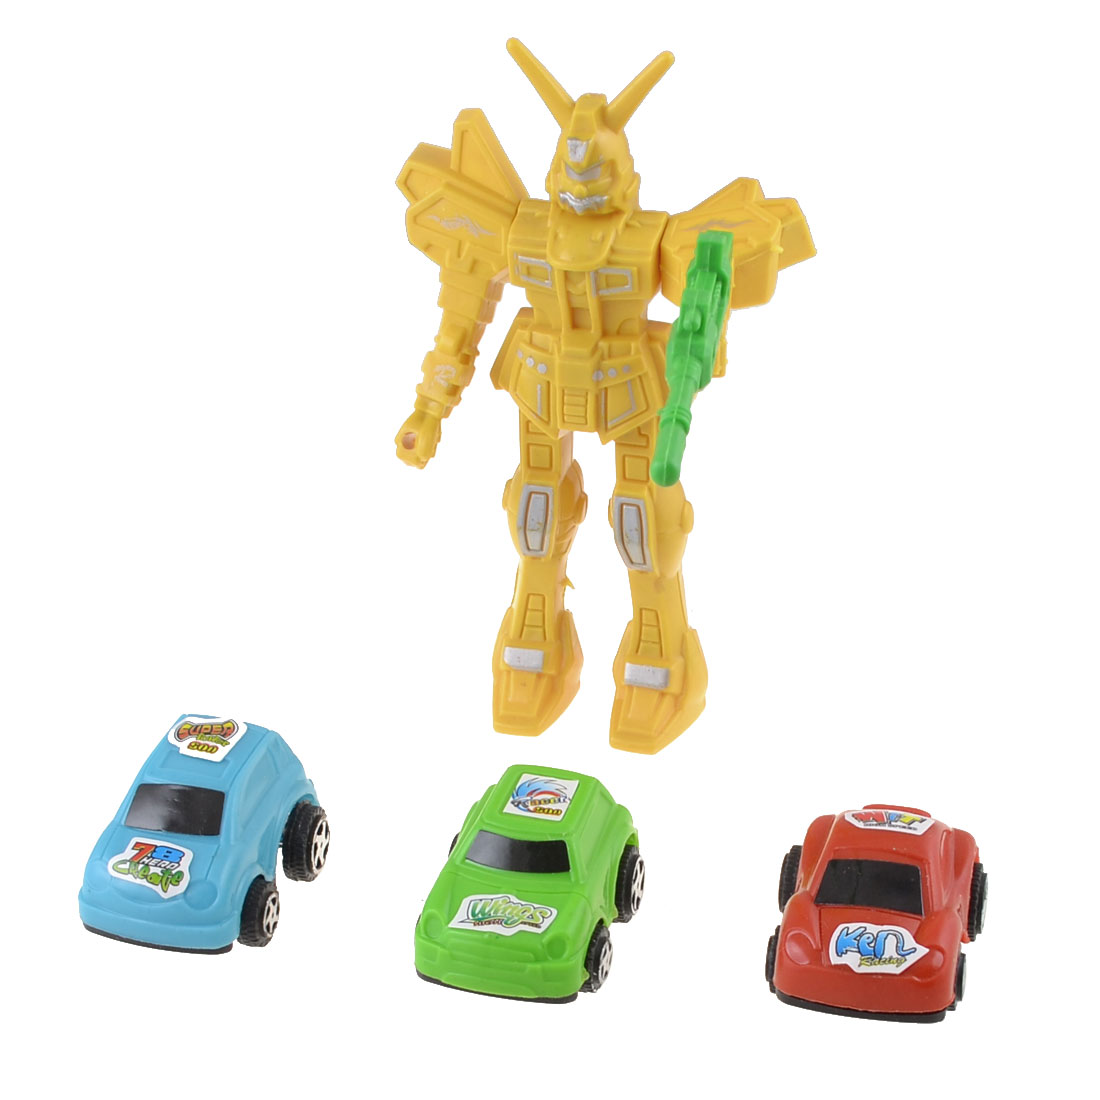 Yellow-Green-Plastic-Robot-Gun-Model-Cars-Toy-Set-4-in-1